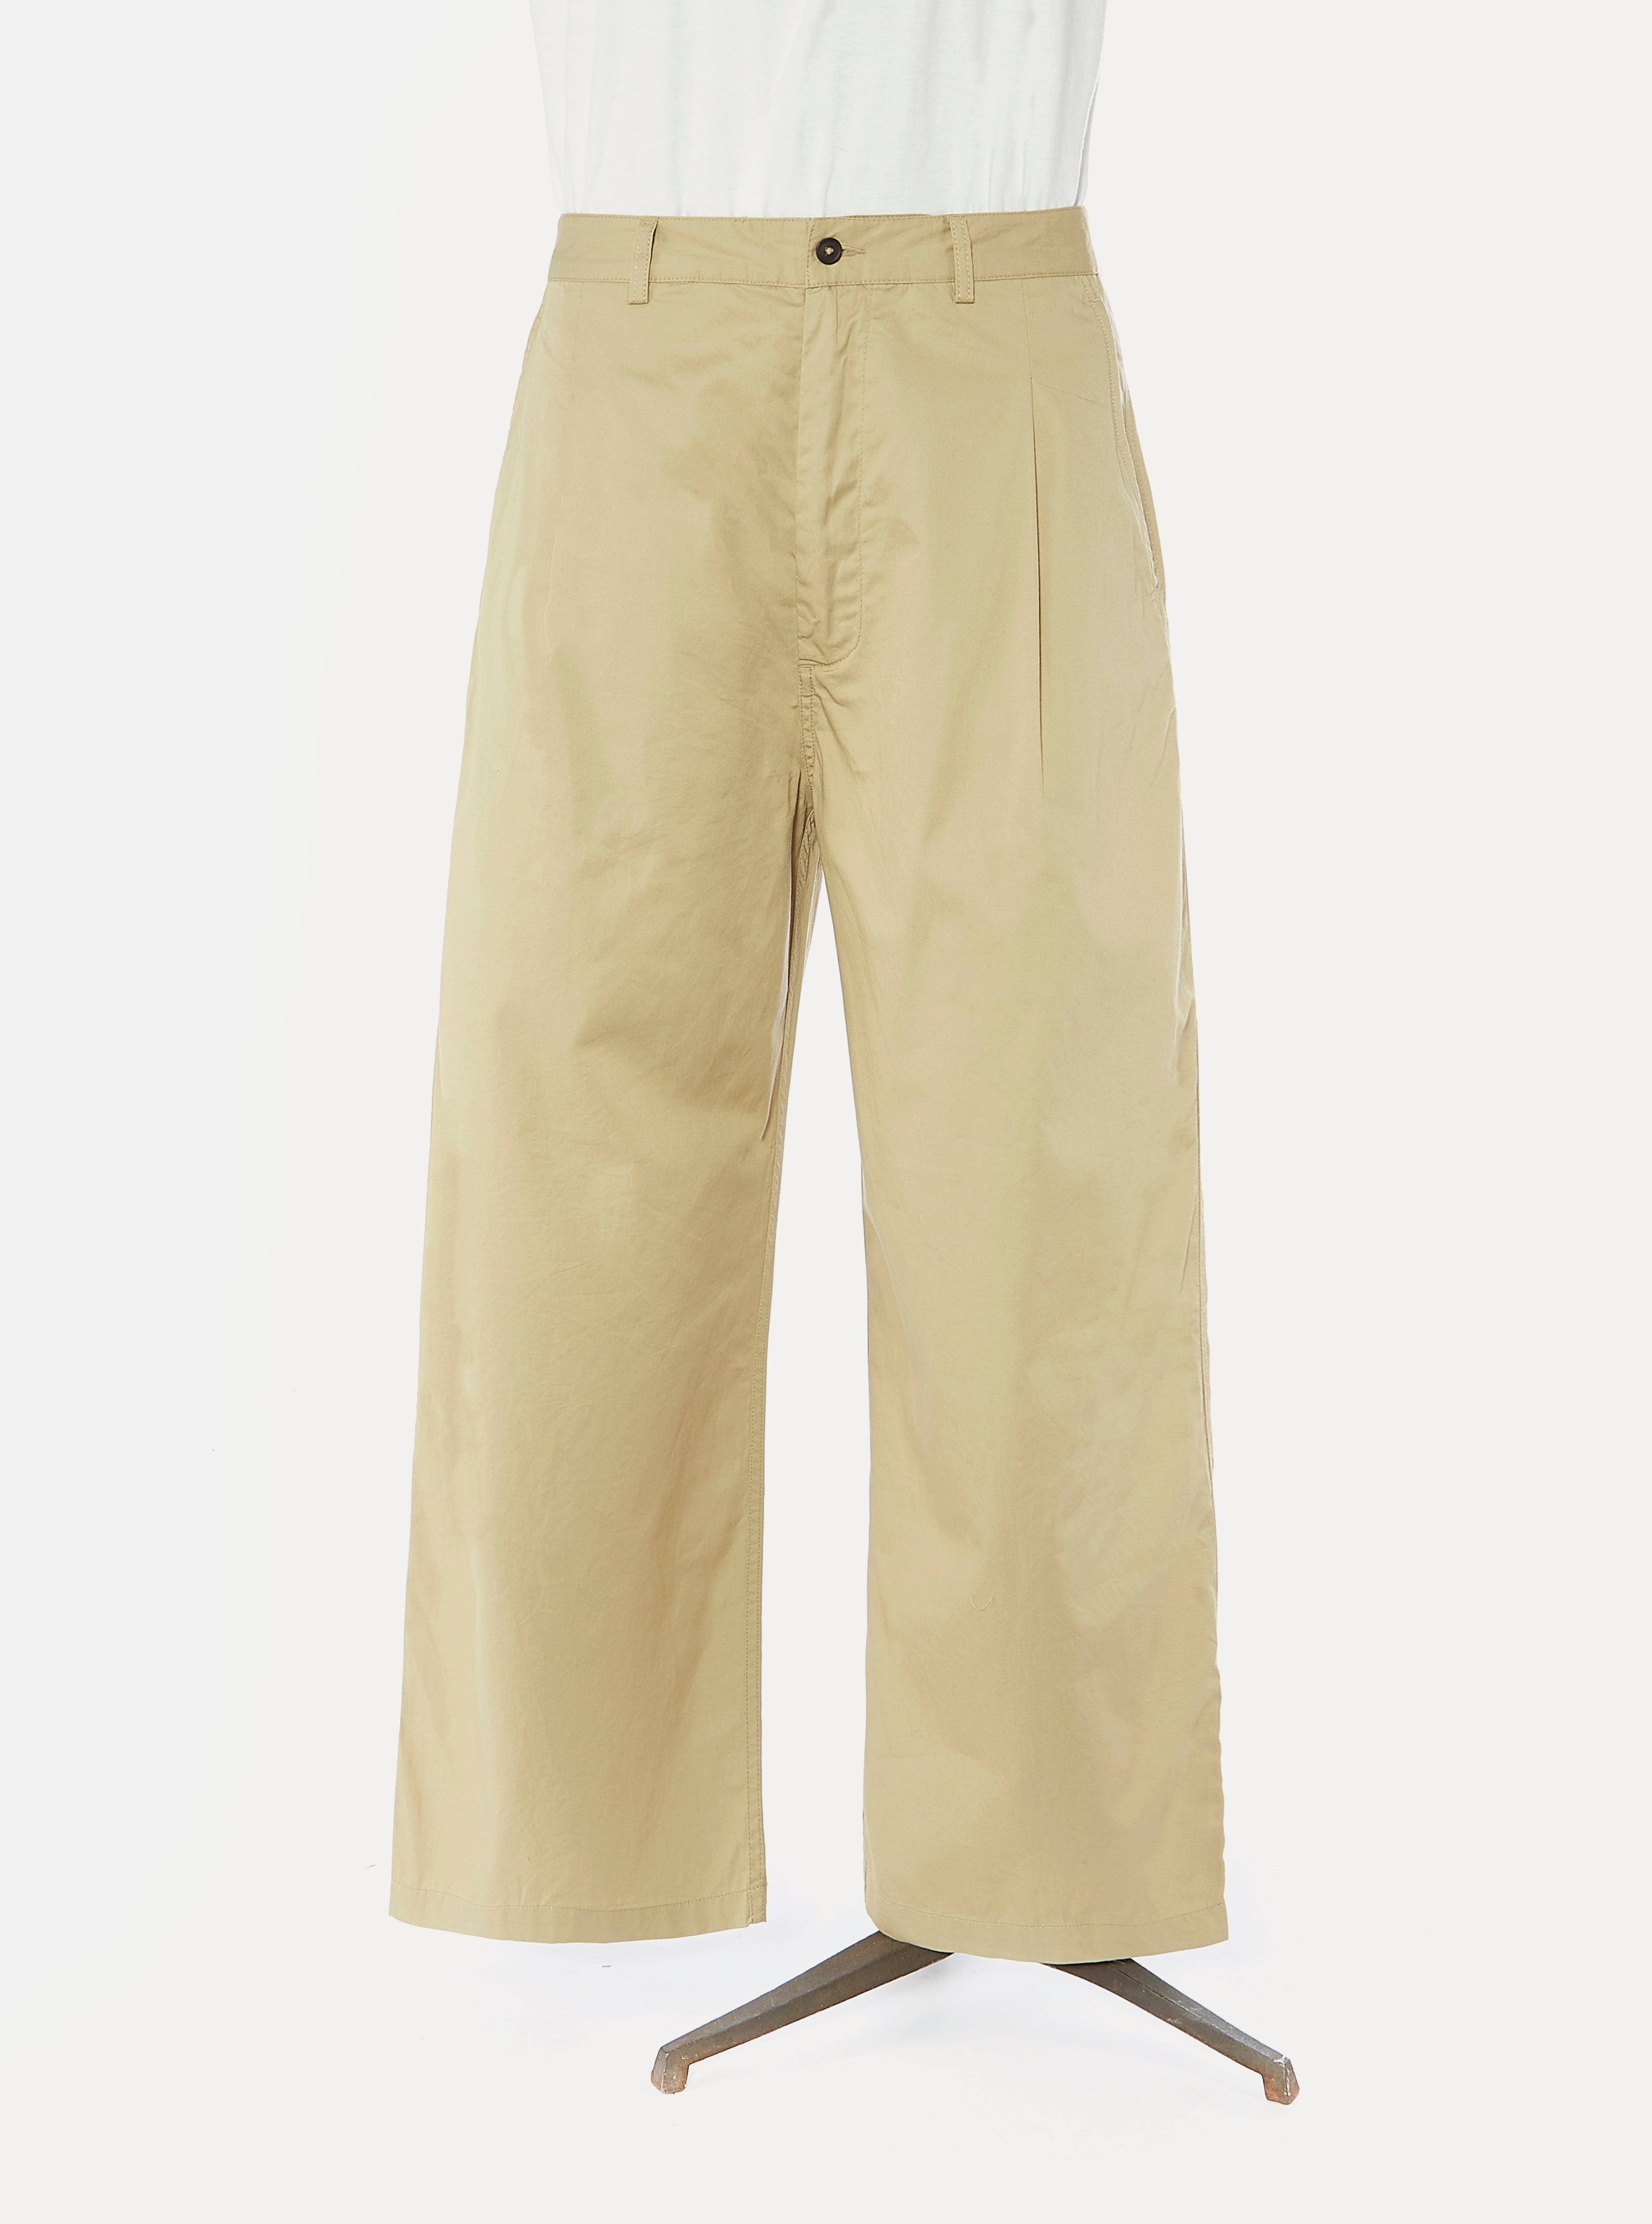 Universal Works Sailor Pant in Tan Fine Twill